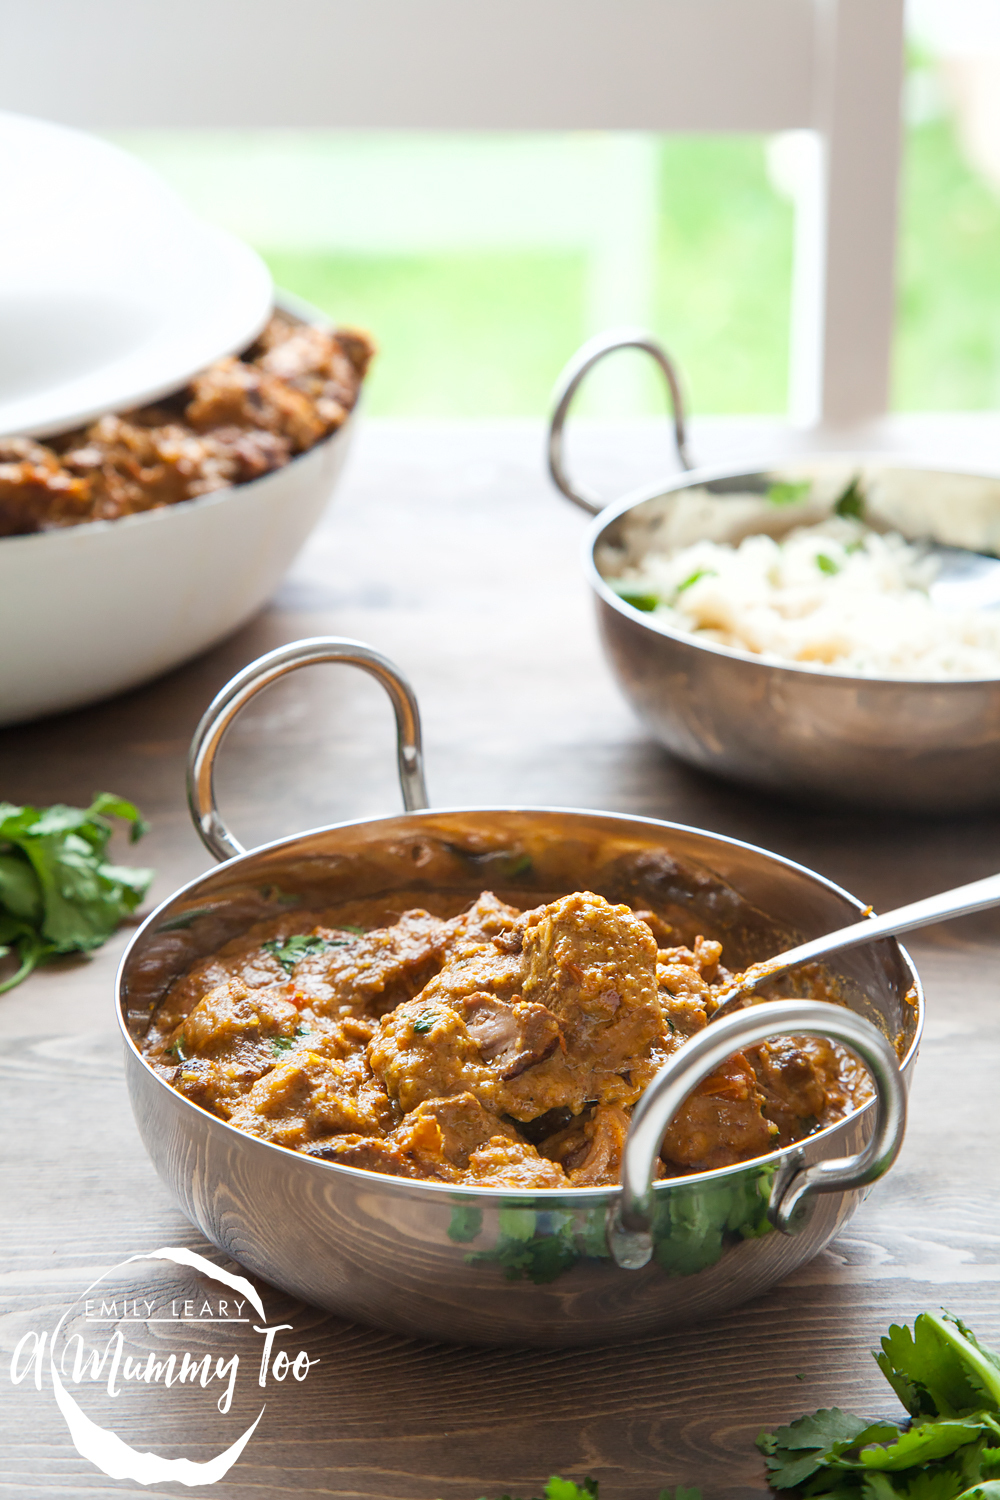 Slow cooked, one-pot, melt-in-the-mouth lamb korma